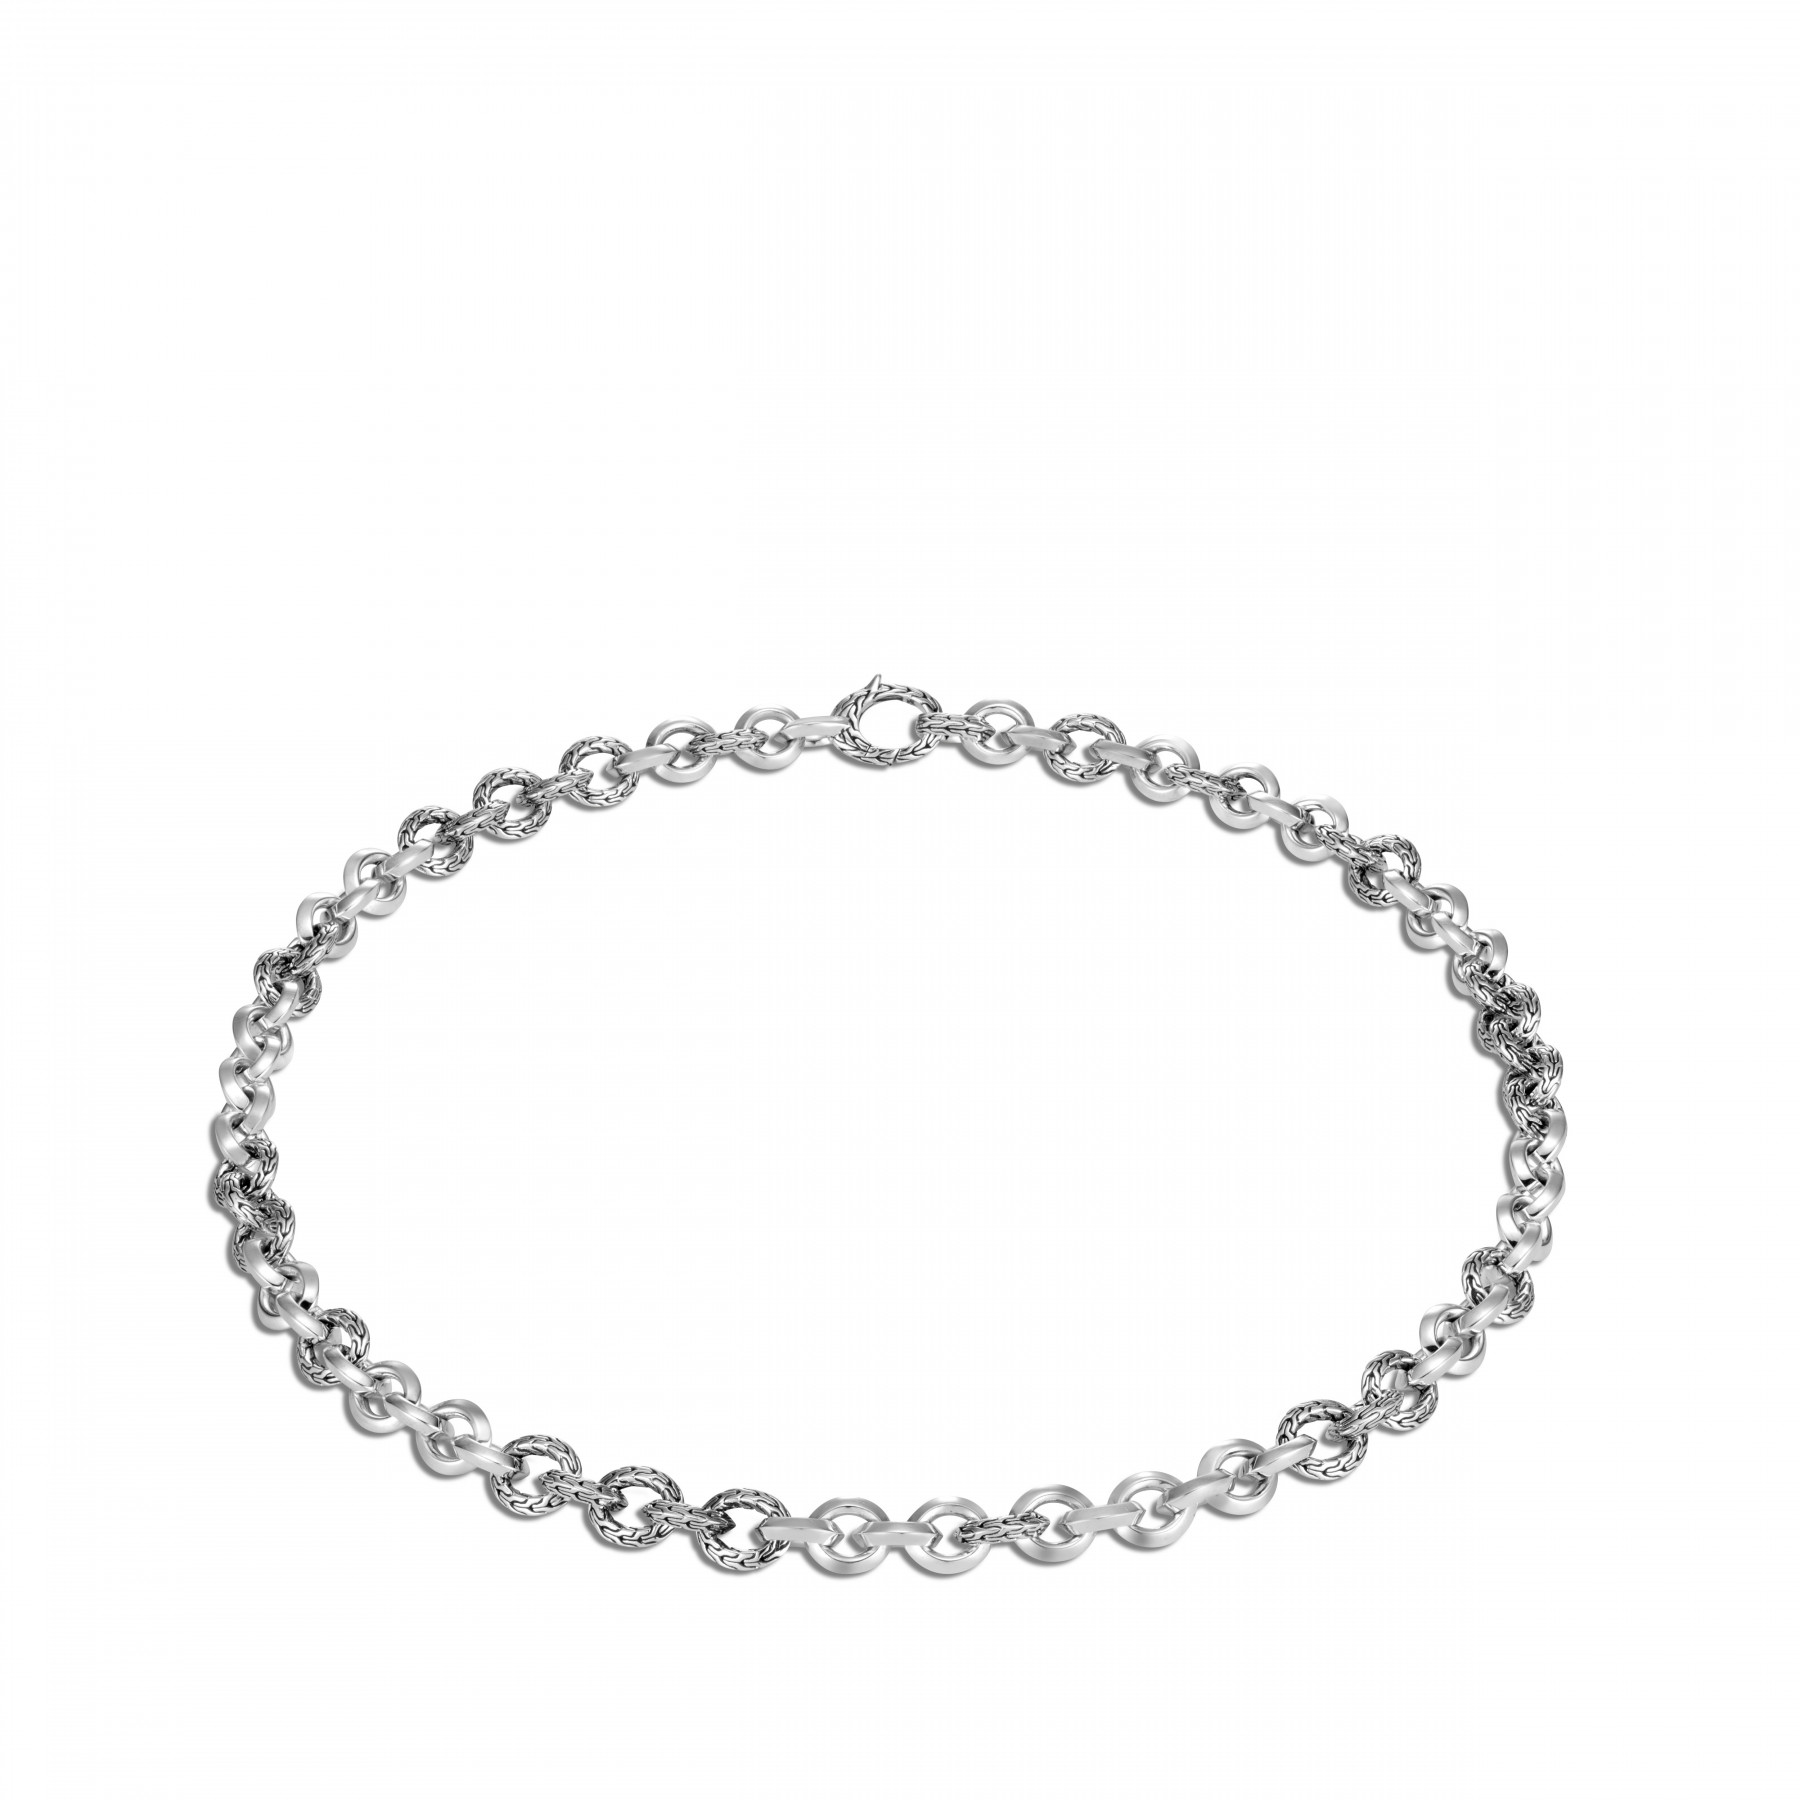 John Hardy Classic Chain Silver Link Necklace - 8.1mm flat view